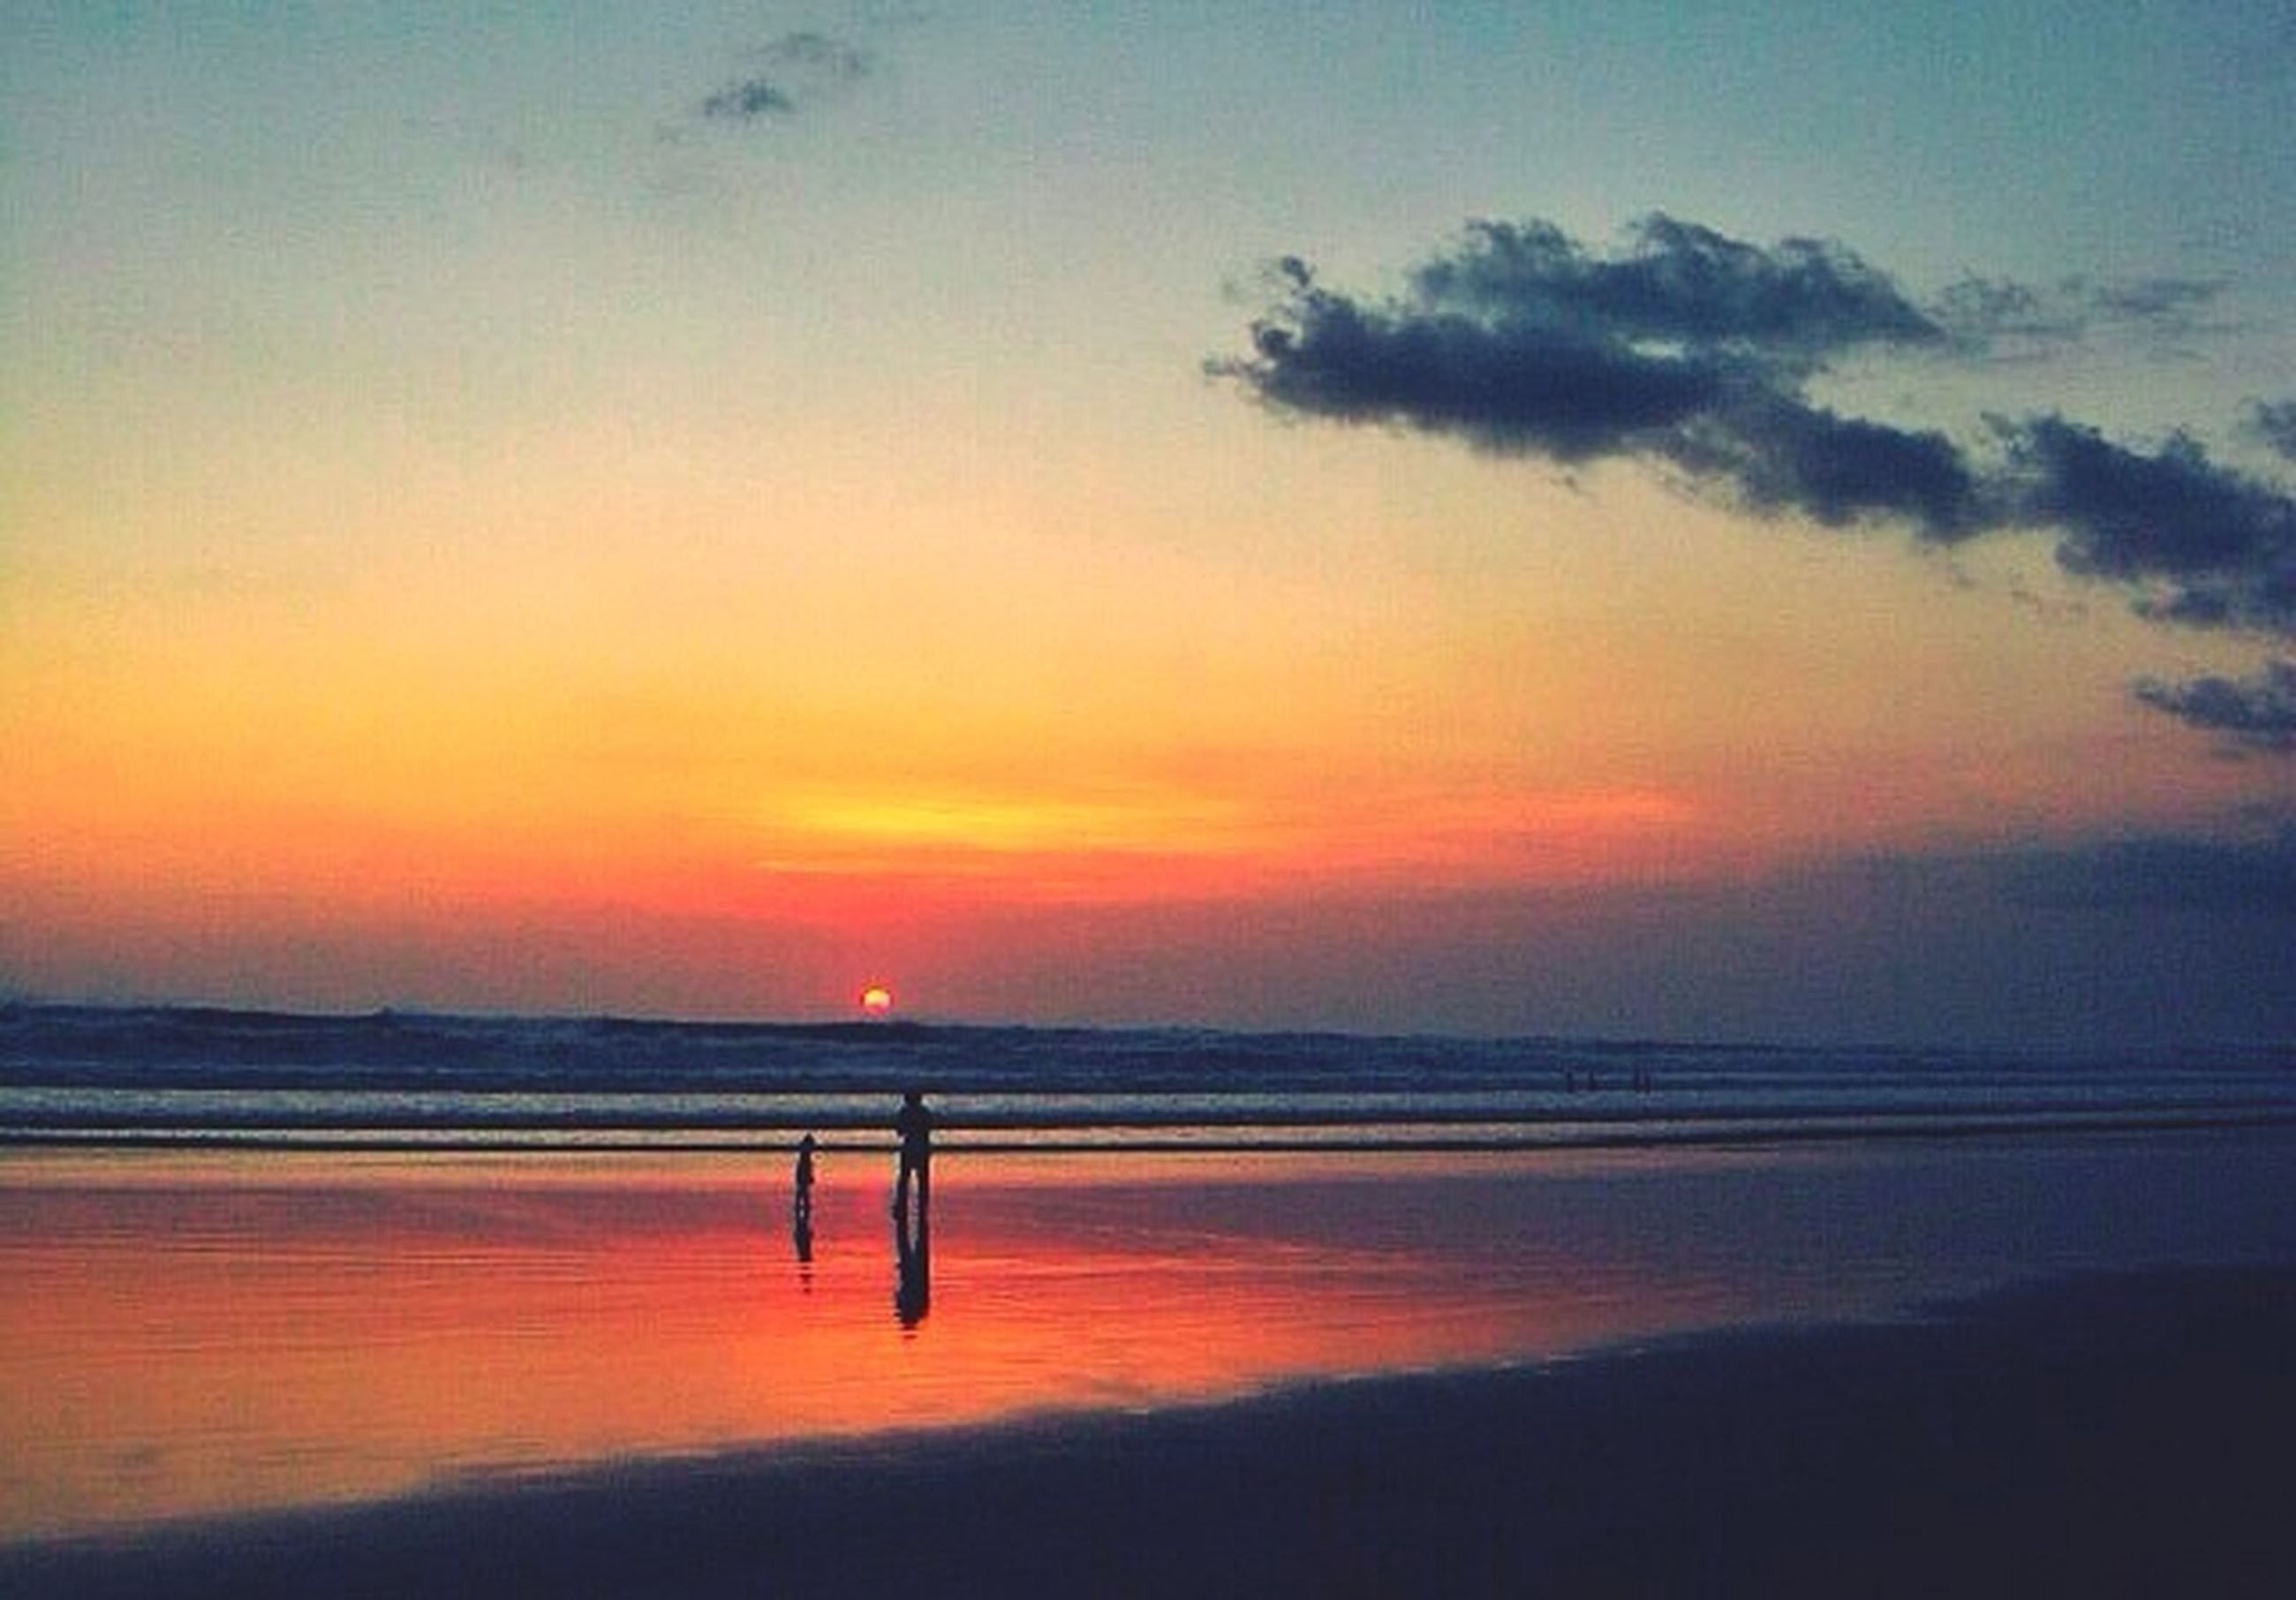 sea, sunset, horizon over water, water, beach, scenics, tranquil scene, tranquility, beauty in nature, orange color, sky, shore, silhouette, idyllic, nature, reflection, outdoors, remote, cloud - sky, calm